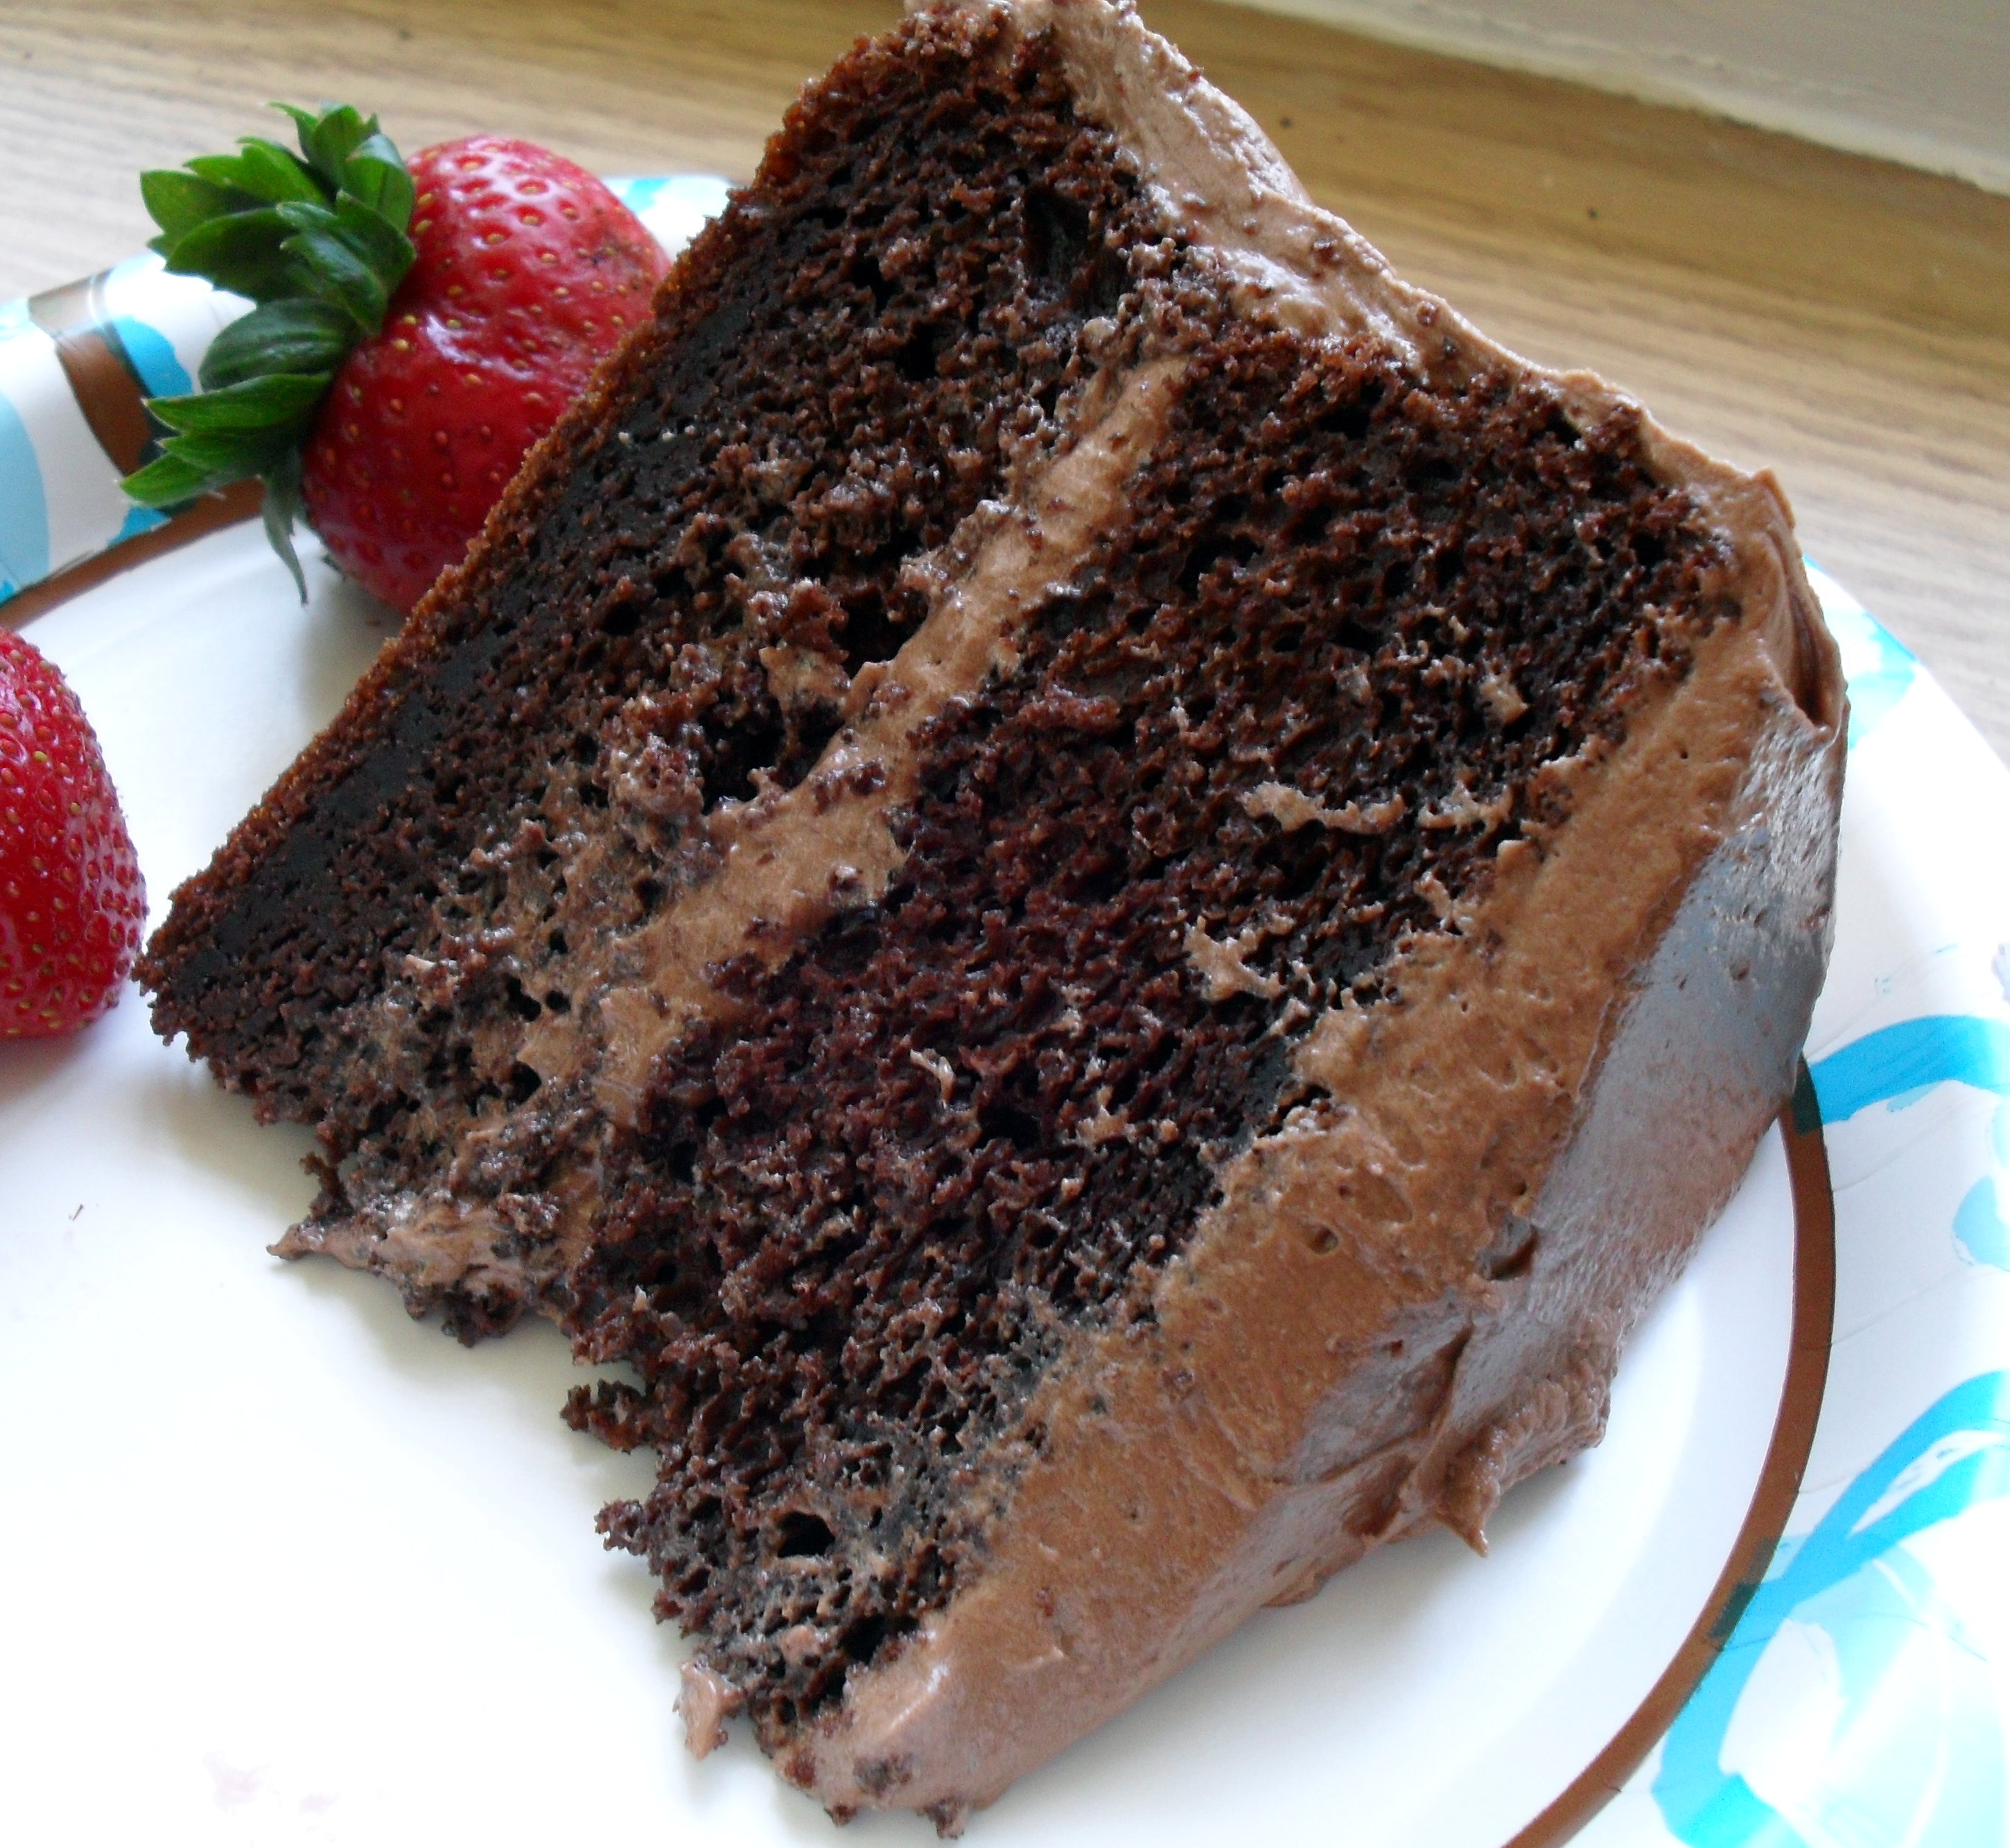 Chocolate Cake Recipe With Sour Cream And Pudding